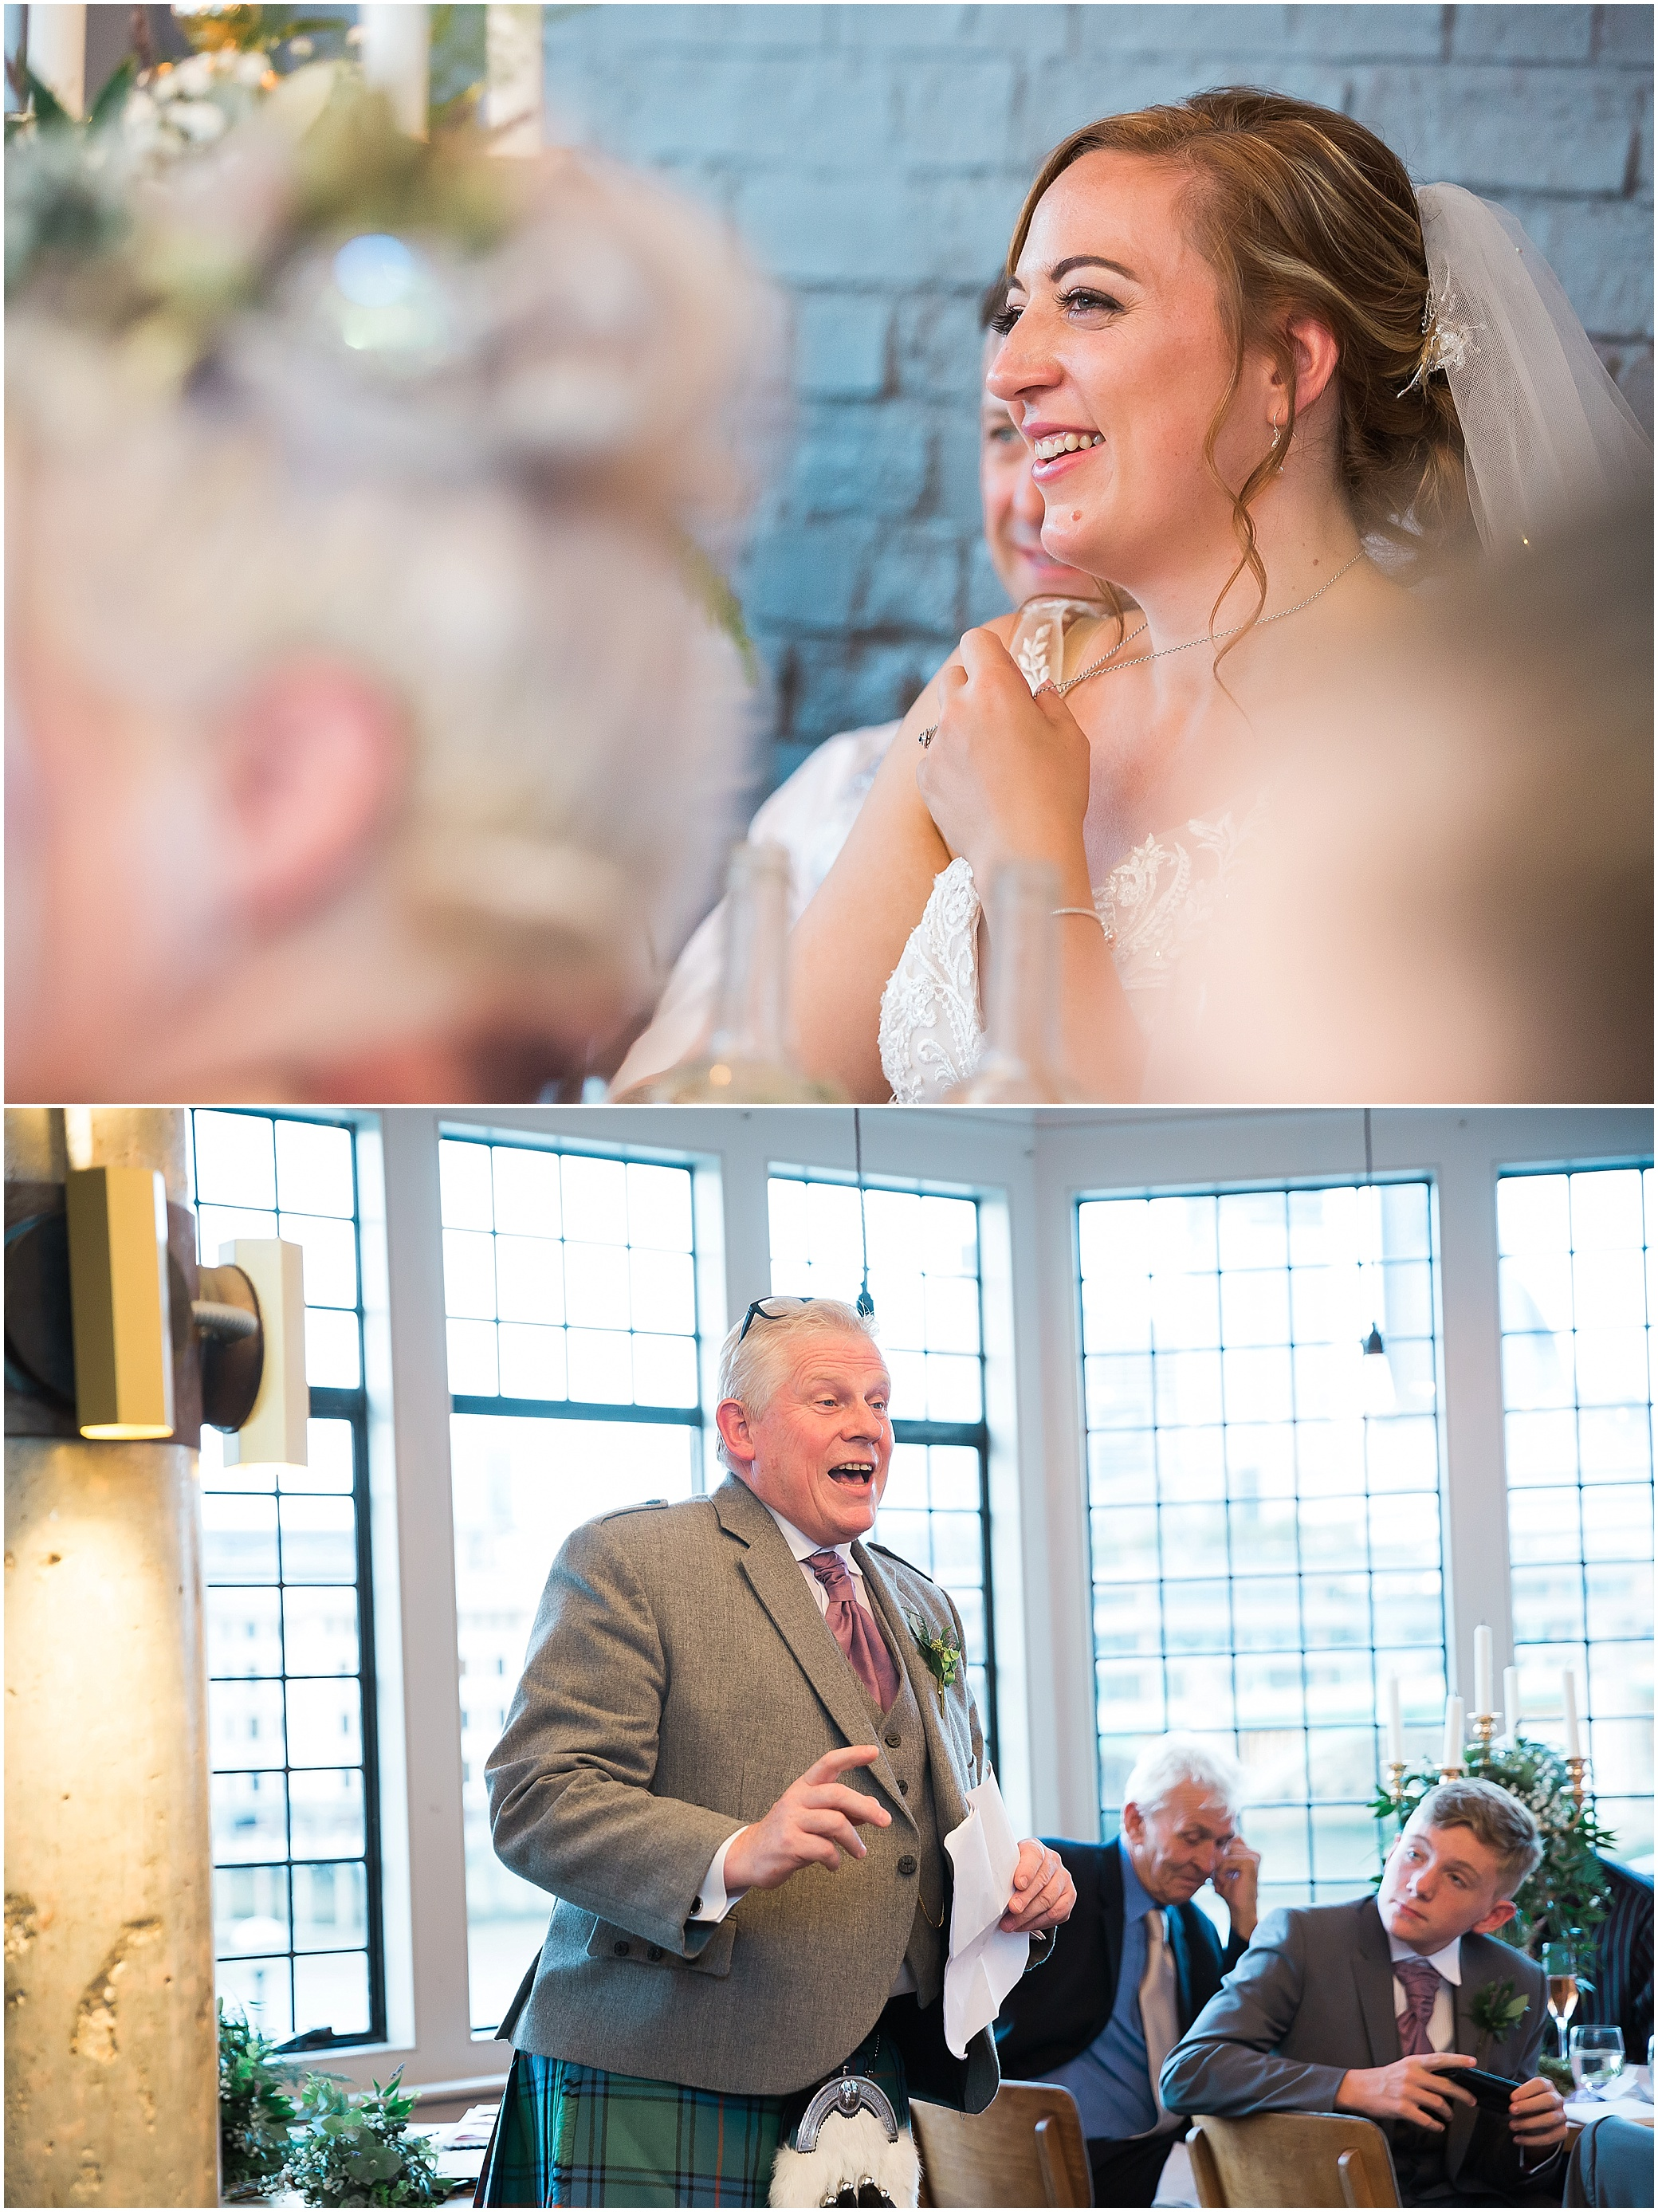 Guests laugh as best man gives a wedding speech at The Swan at Shakespeare's Globe on the Southbank, London